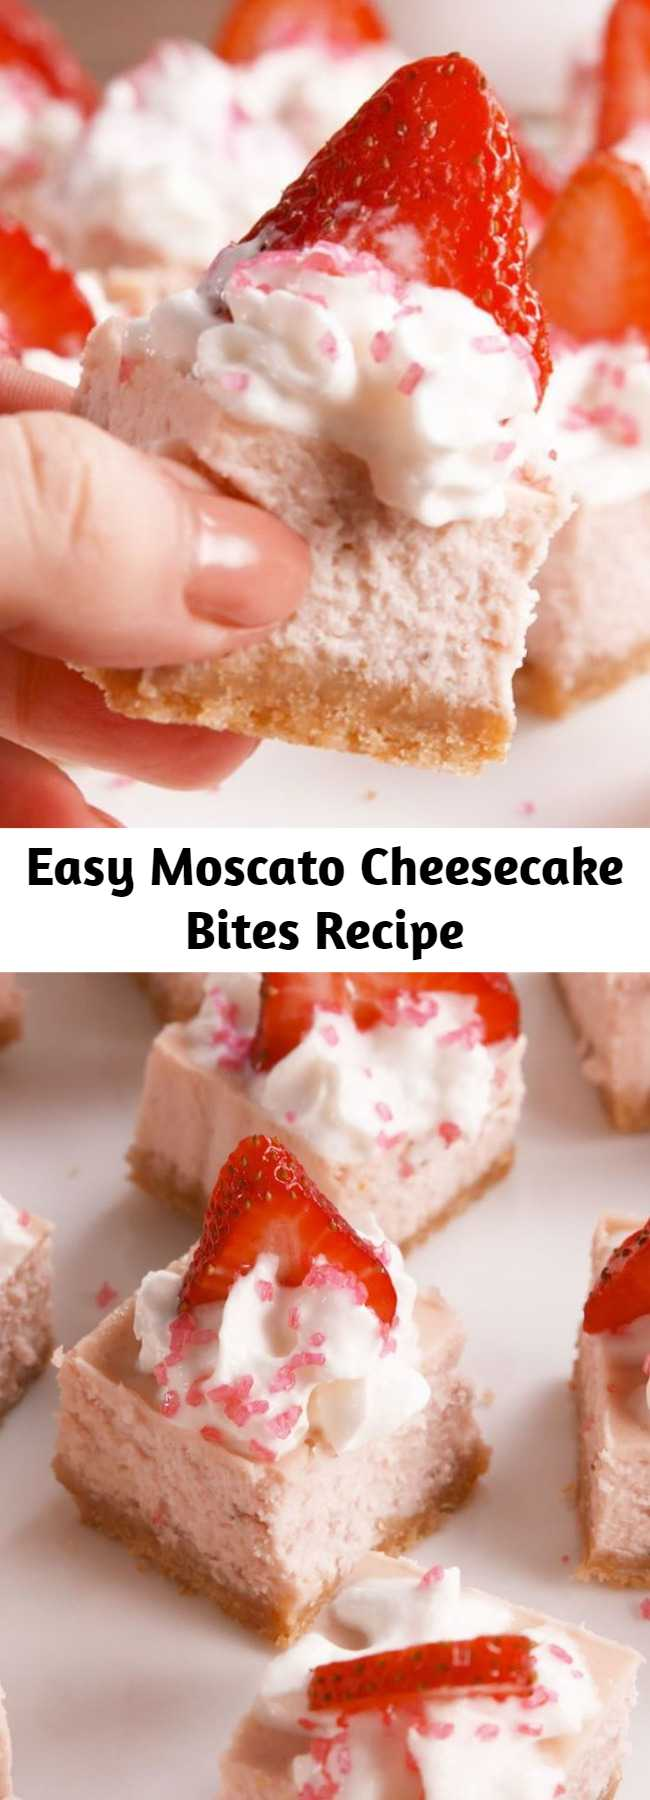 Easy Moscato Cheesecake Bites Recipe - A cheesecake that's as fancy as you. #recipe #easyrecipe #dessert #cheesecake #cheese #strawberry #strawberries #strawberryrecipes #whippedcream #creamcheese #moscato #wine